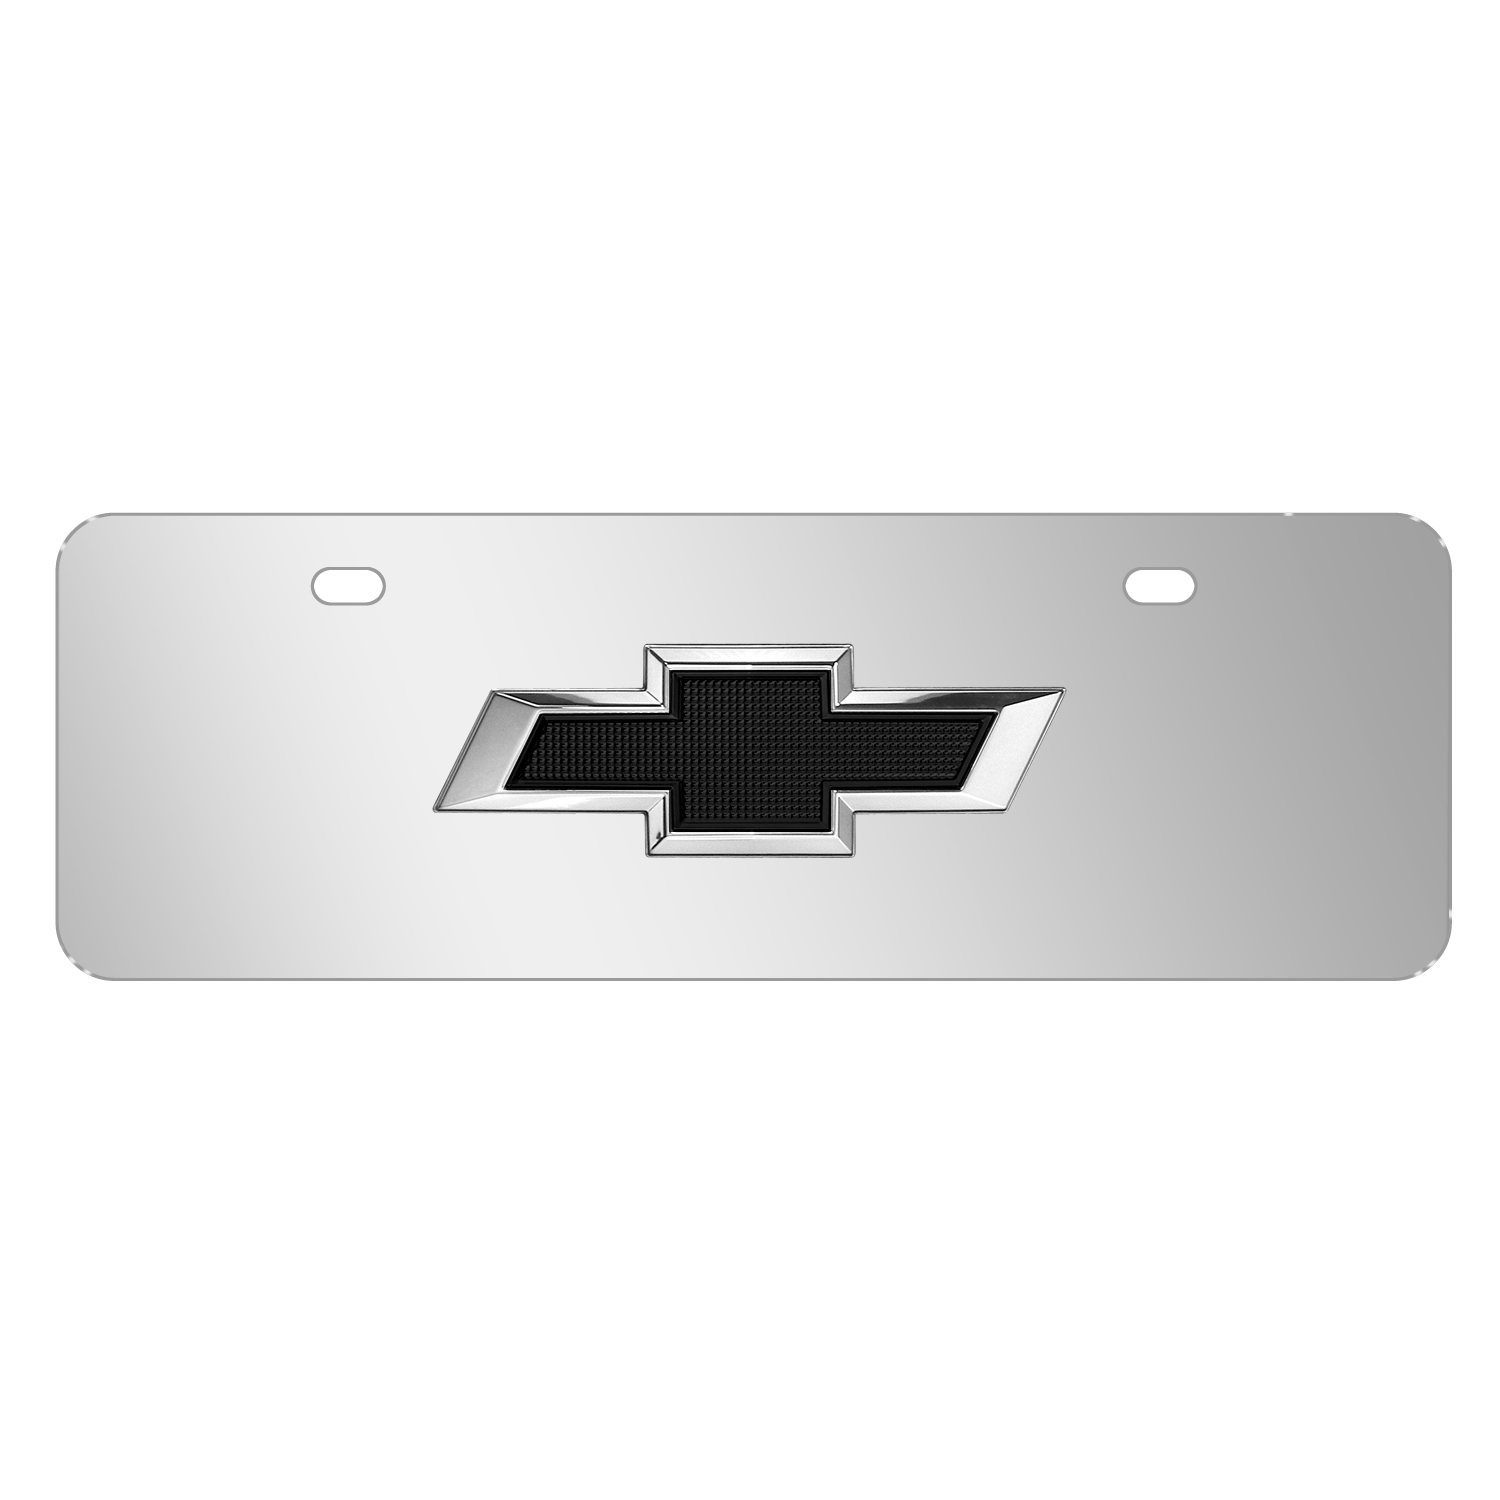 "Chevrolet Black 3D Logo Mirror Chrome 12""x4"" Half-Size Stainless Steel License Plate"